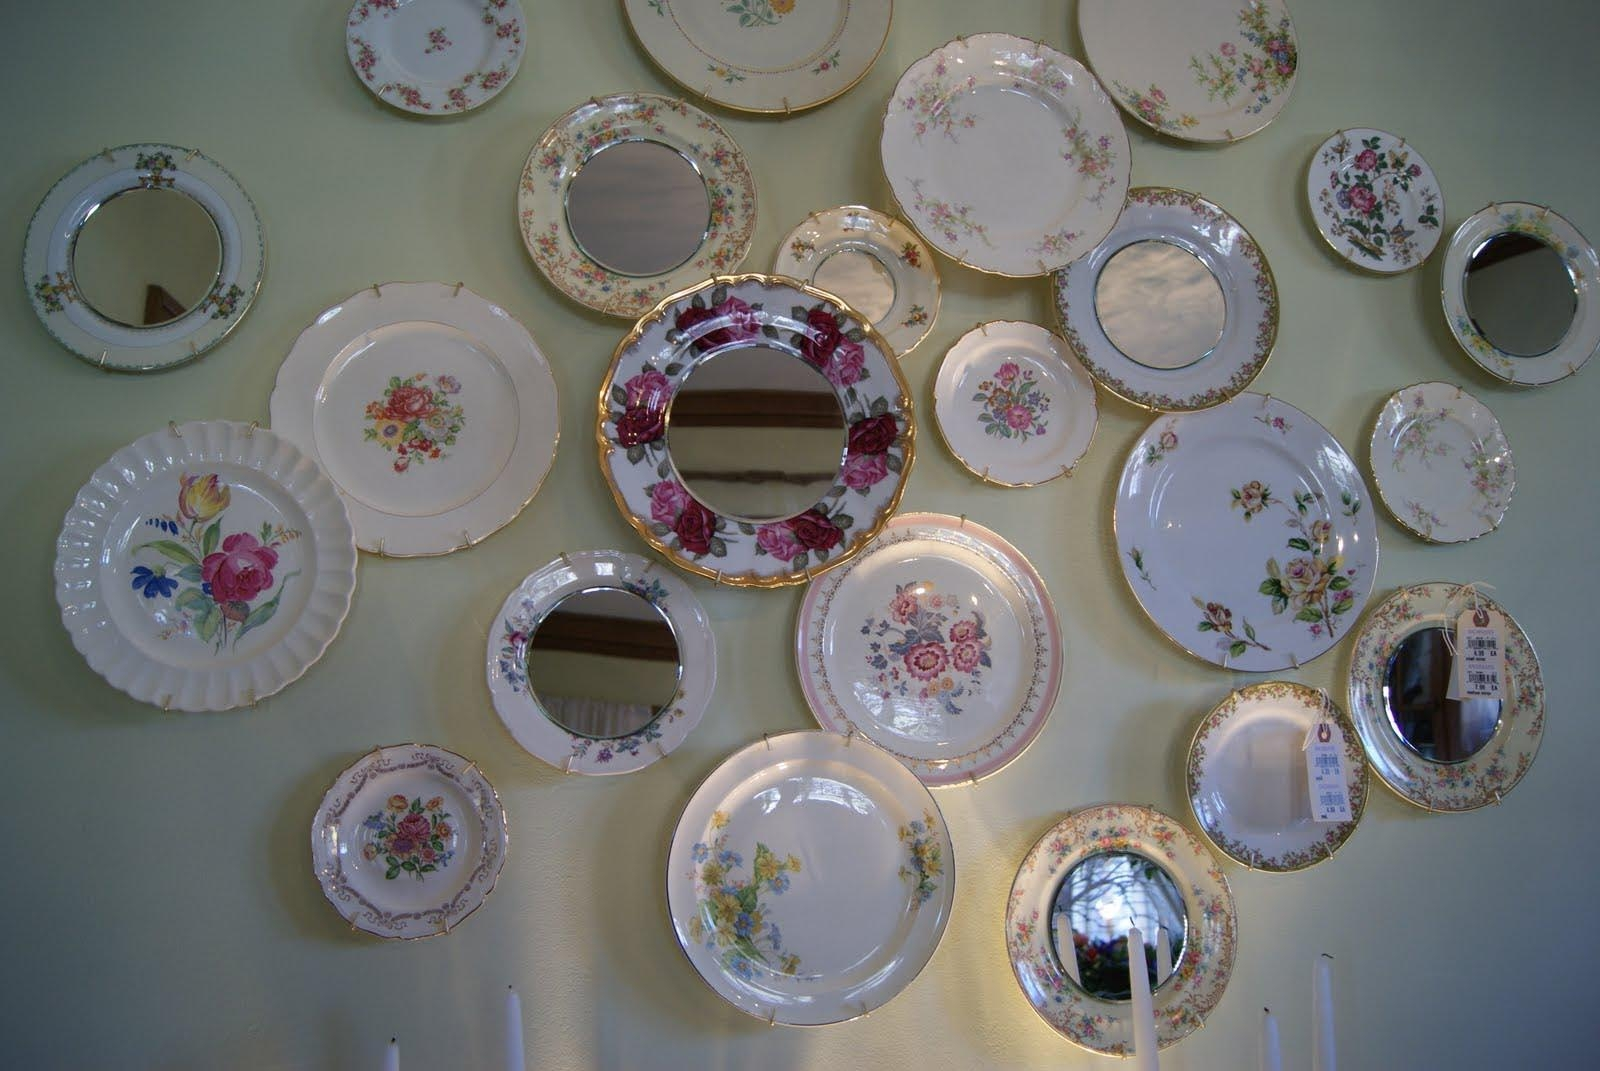 Decorative Plates For Wall Art | Best Decor Things Within Decorative Plates For Wall Art (View 5 of 20)